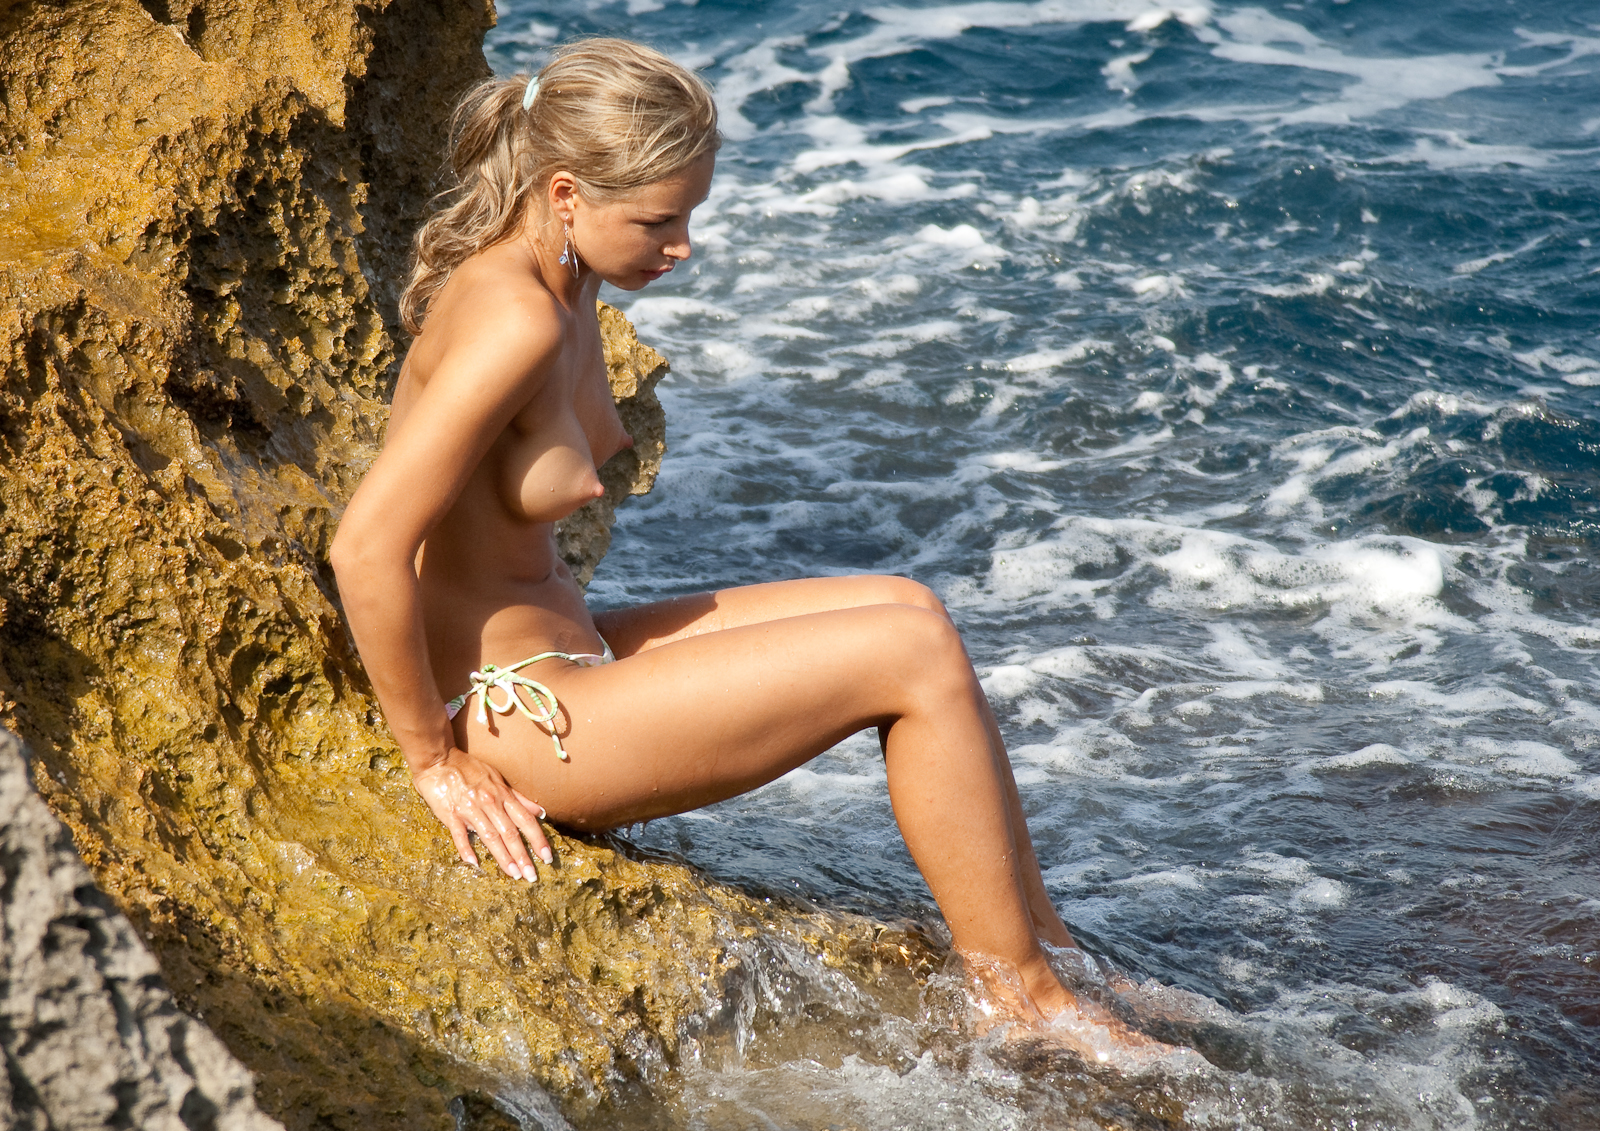 Pics of the girl off naked and afraid nude those